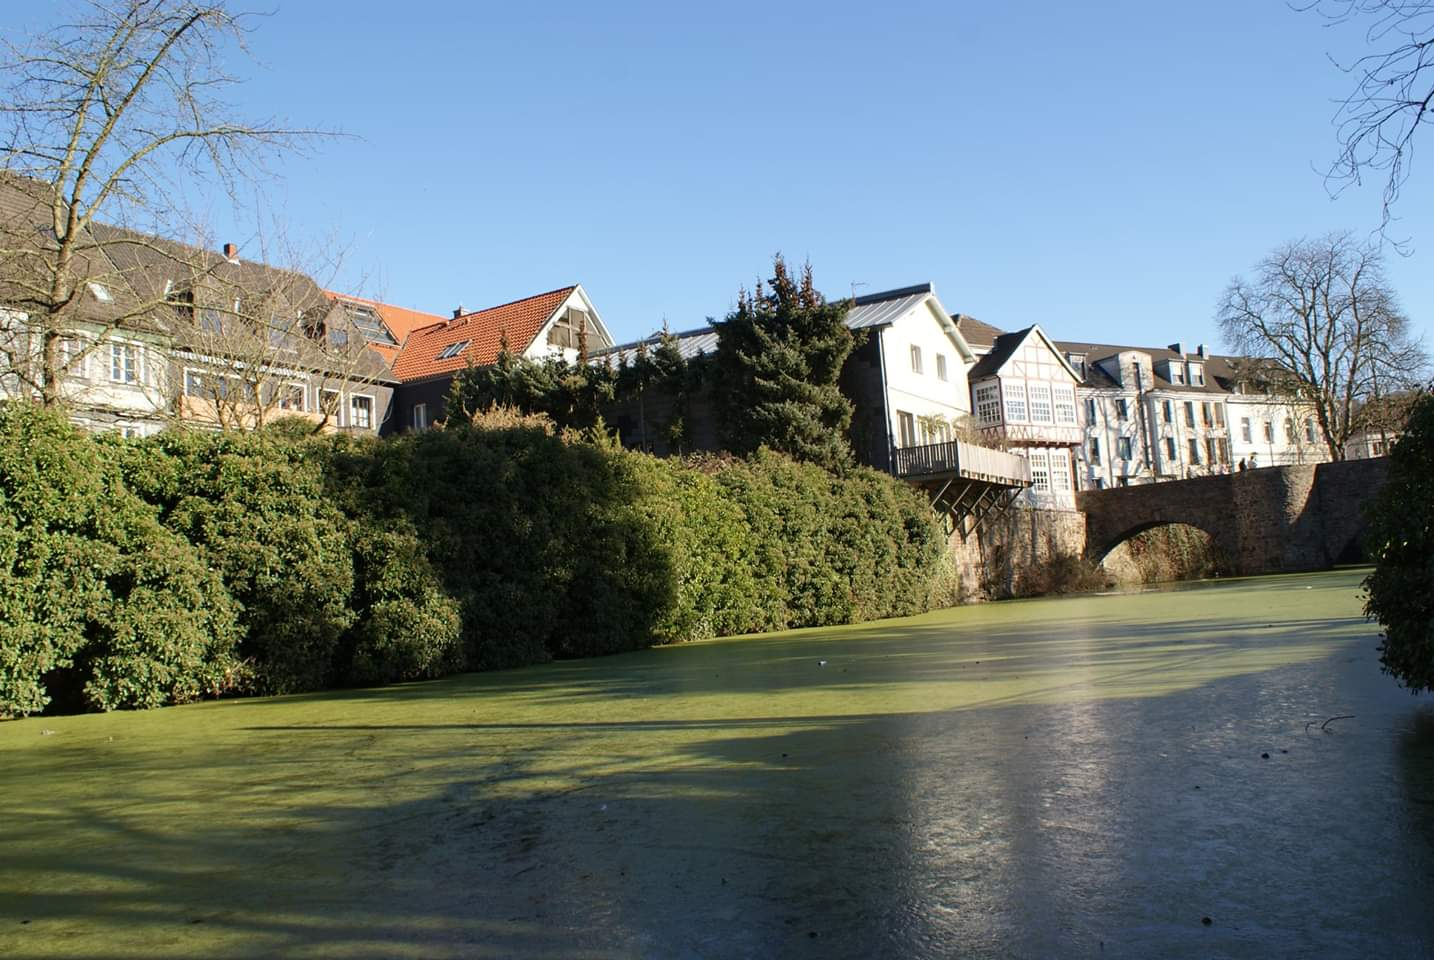 River in Kittwig, Germany  Photo provided by Patrick Salerno '21